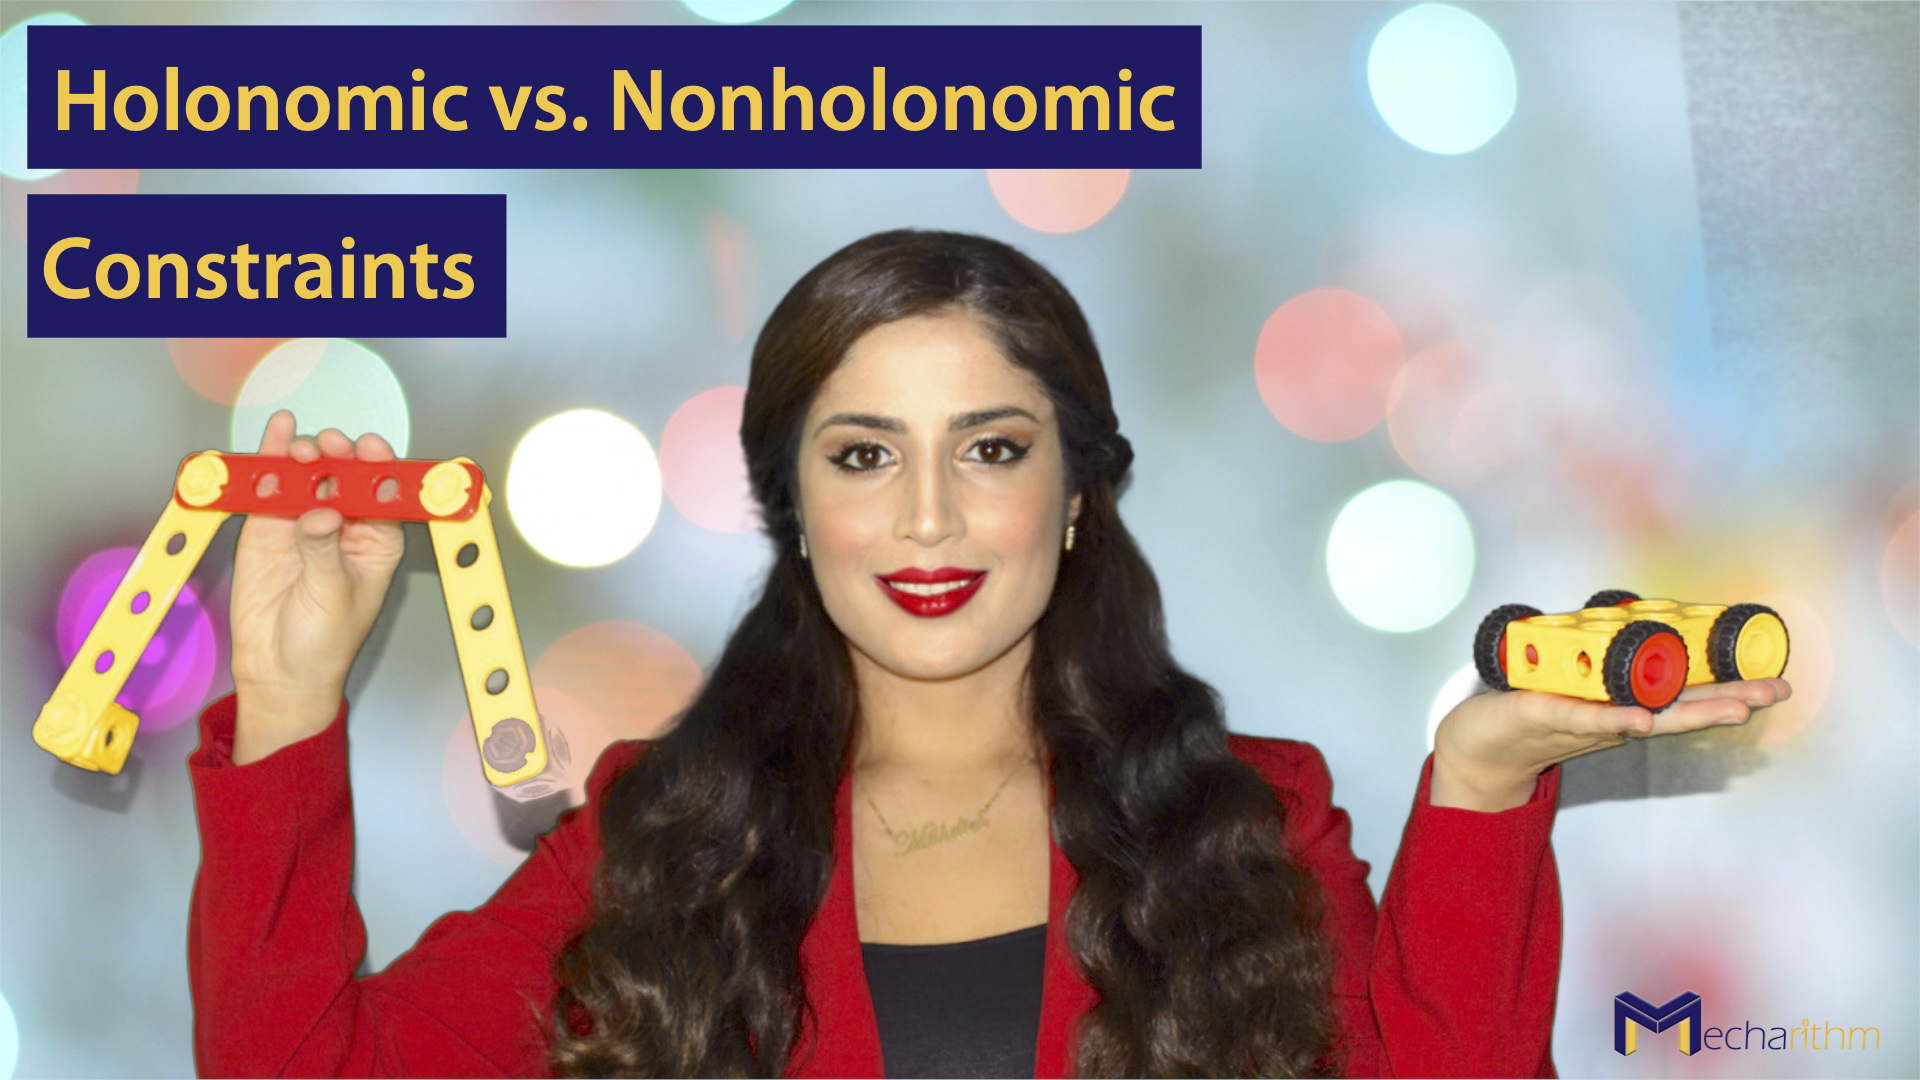 Holonomic vs. Nonholonomic Constraints for Robots